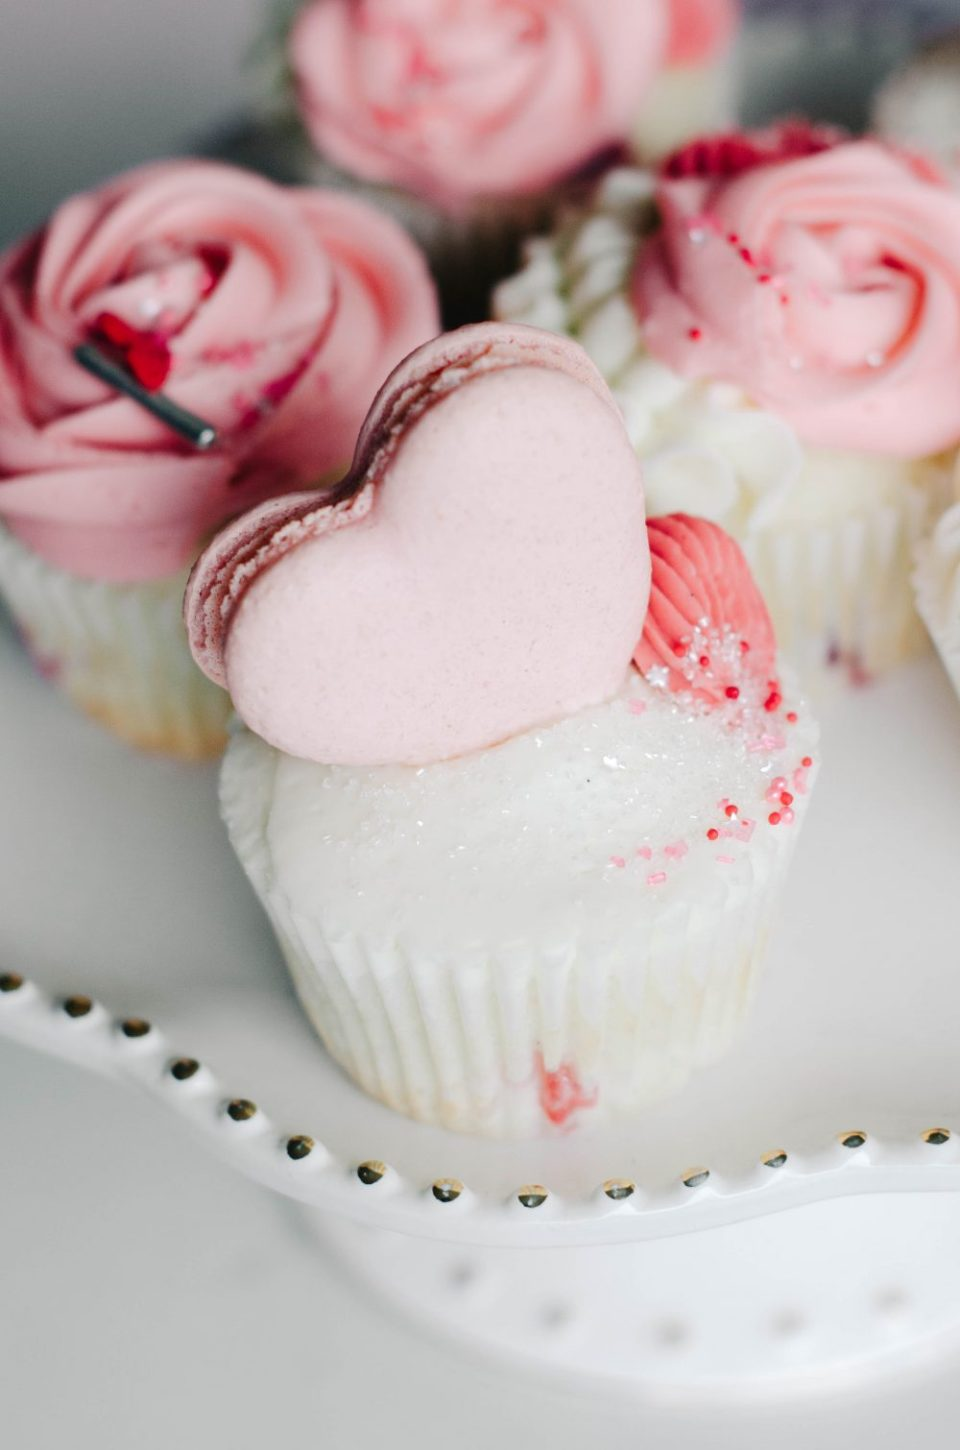 Valetine's Cupcakes by Vanilla Bean Bakery | Valentine's Themed Gift Ideas